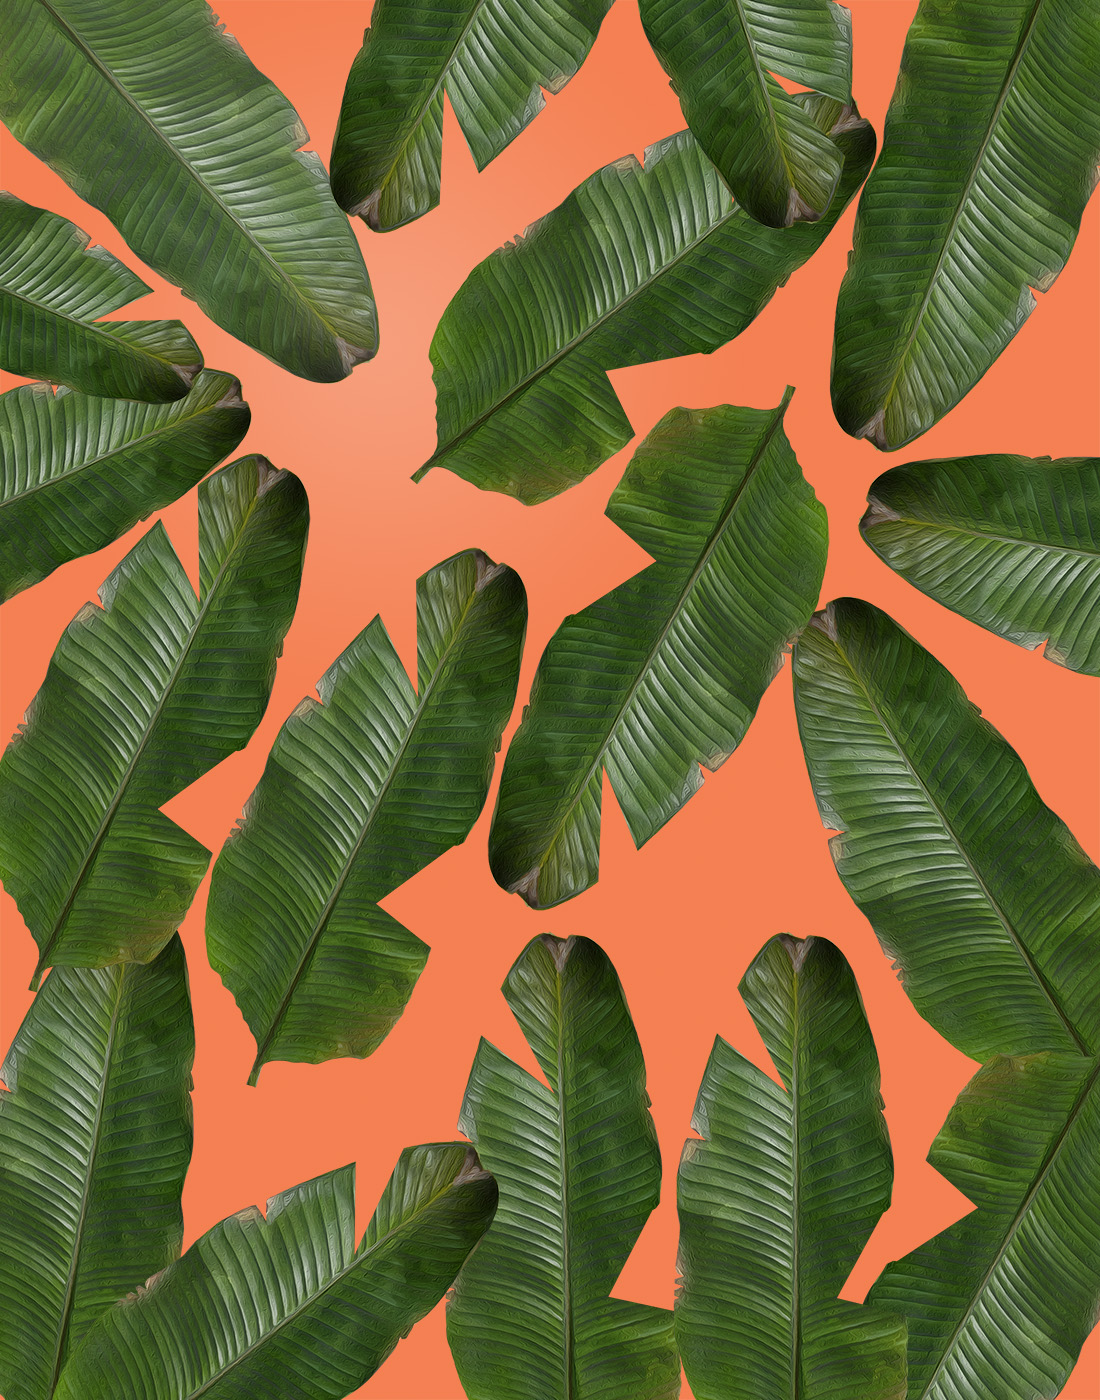 banana leaf wallpaper charlotte anabar 1100x1400